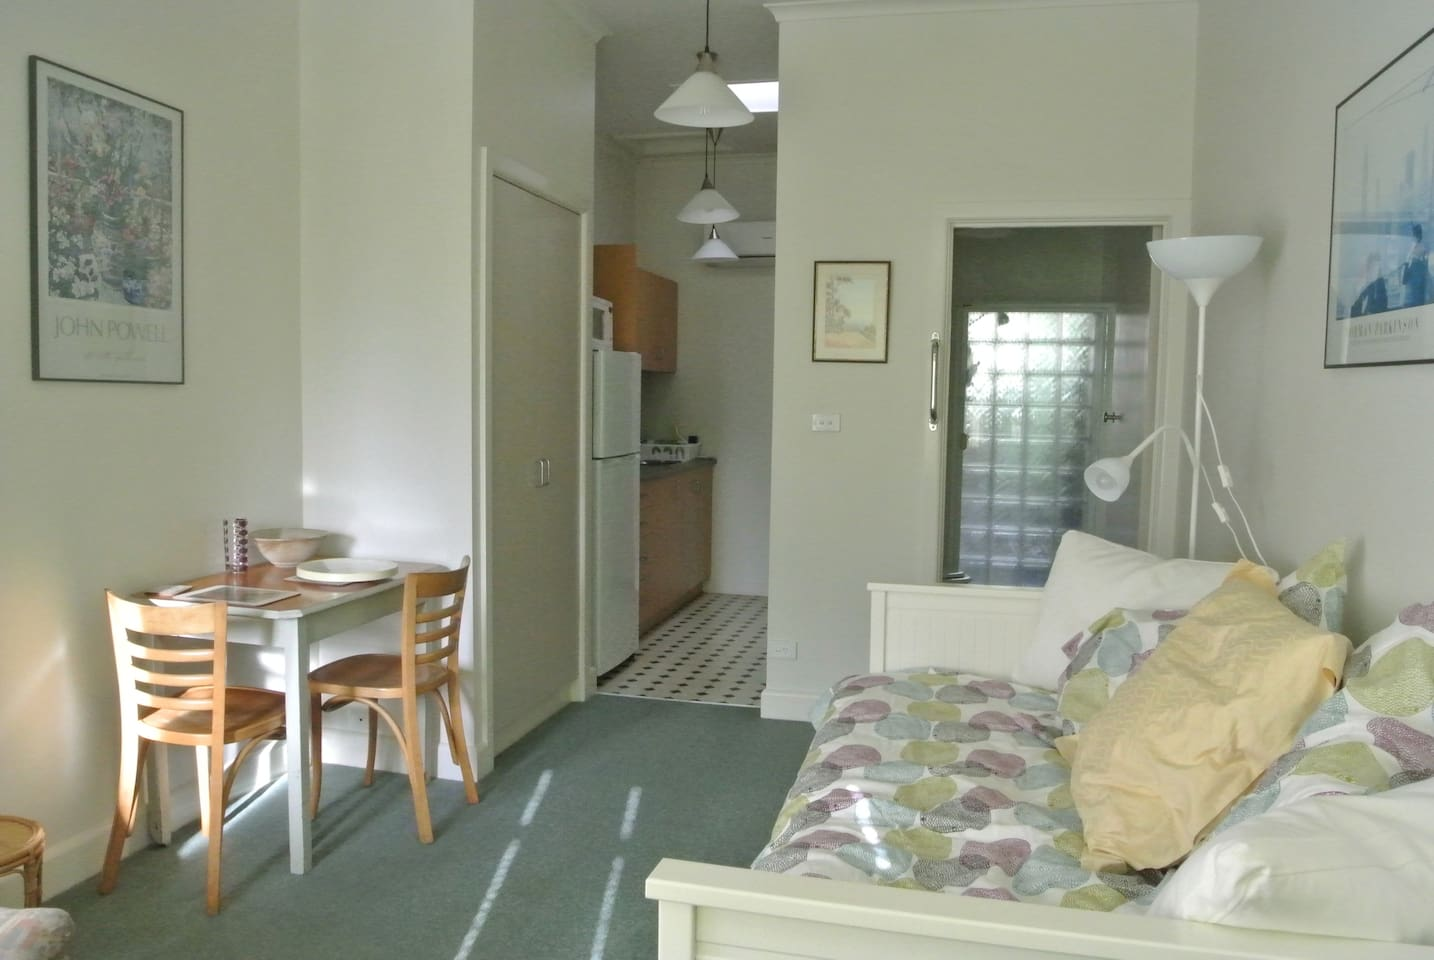 Bed-sitting room with kitchenette and ensuite